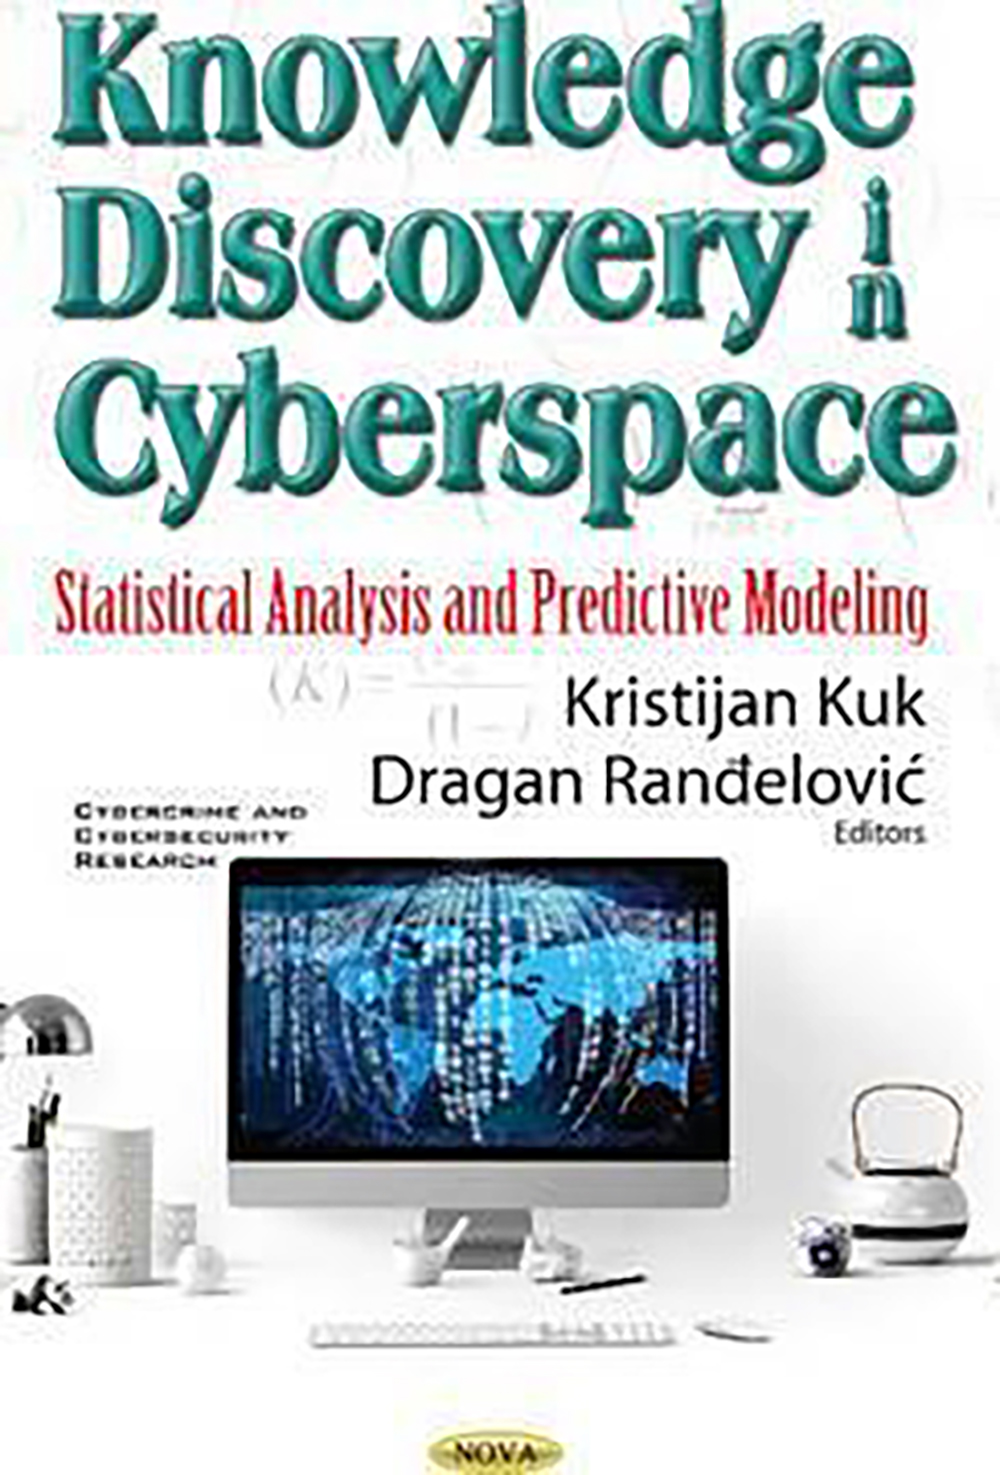 Book Review: Using Statistics and Machine Learning to